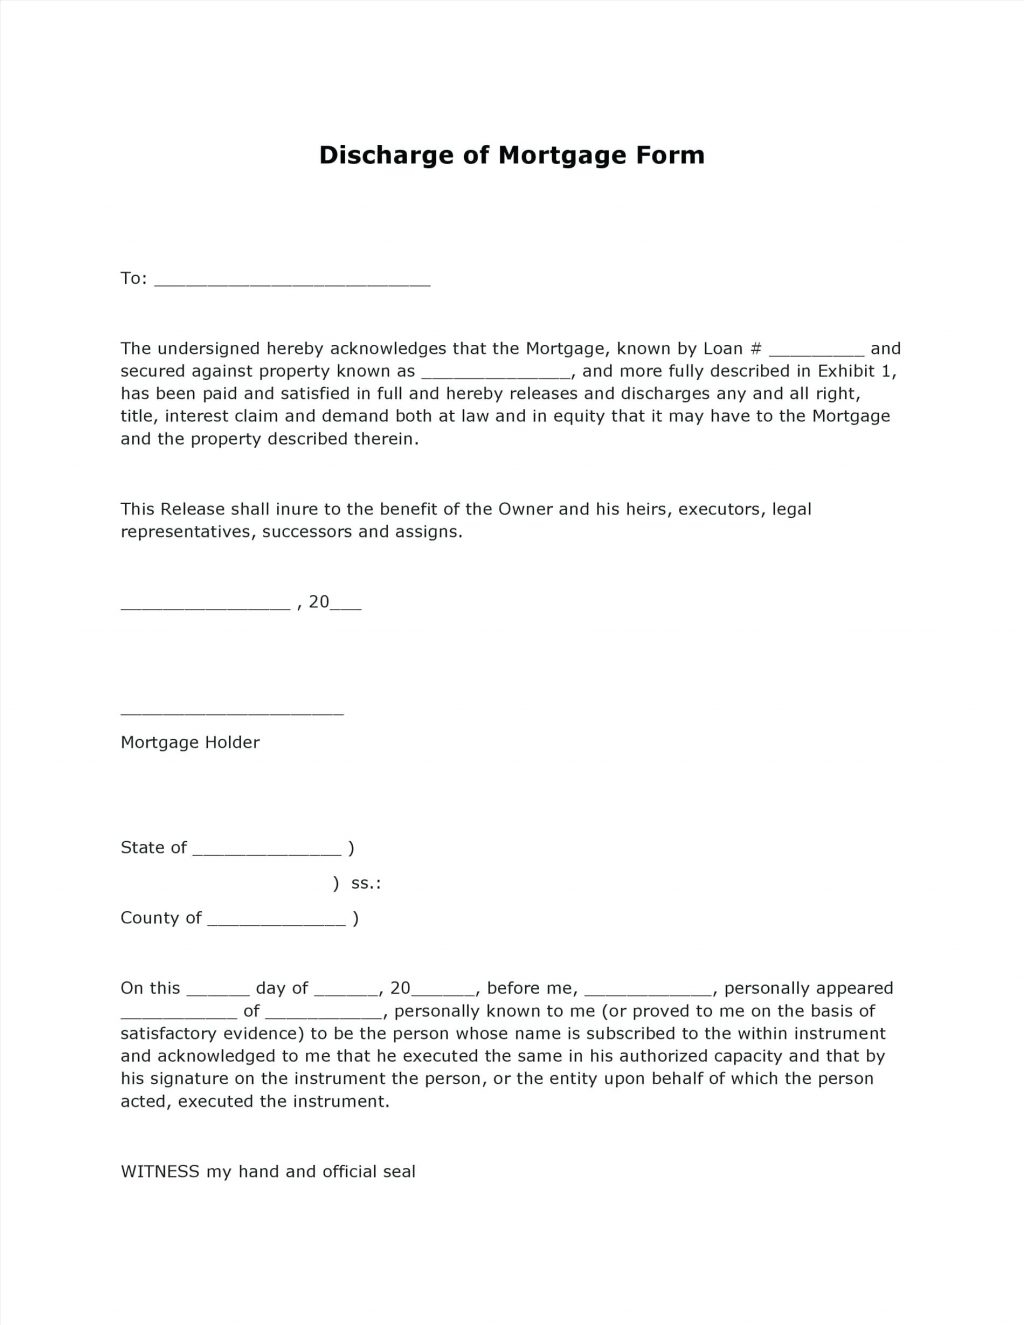 Loan Satisfaction Letter Template - Businessent Letter Sample Image Letters Template Mortgage Loan